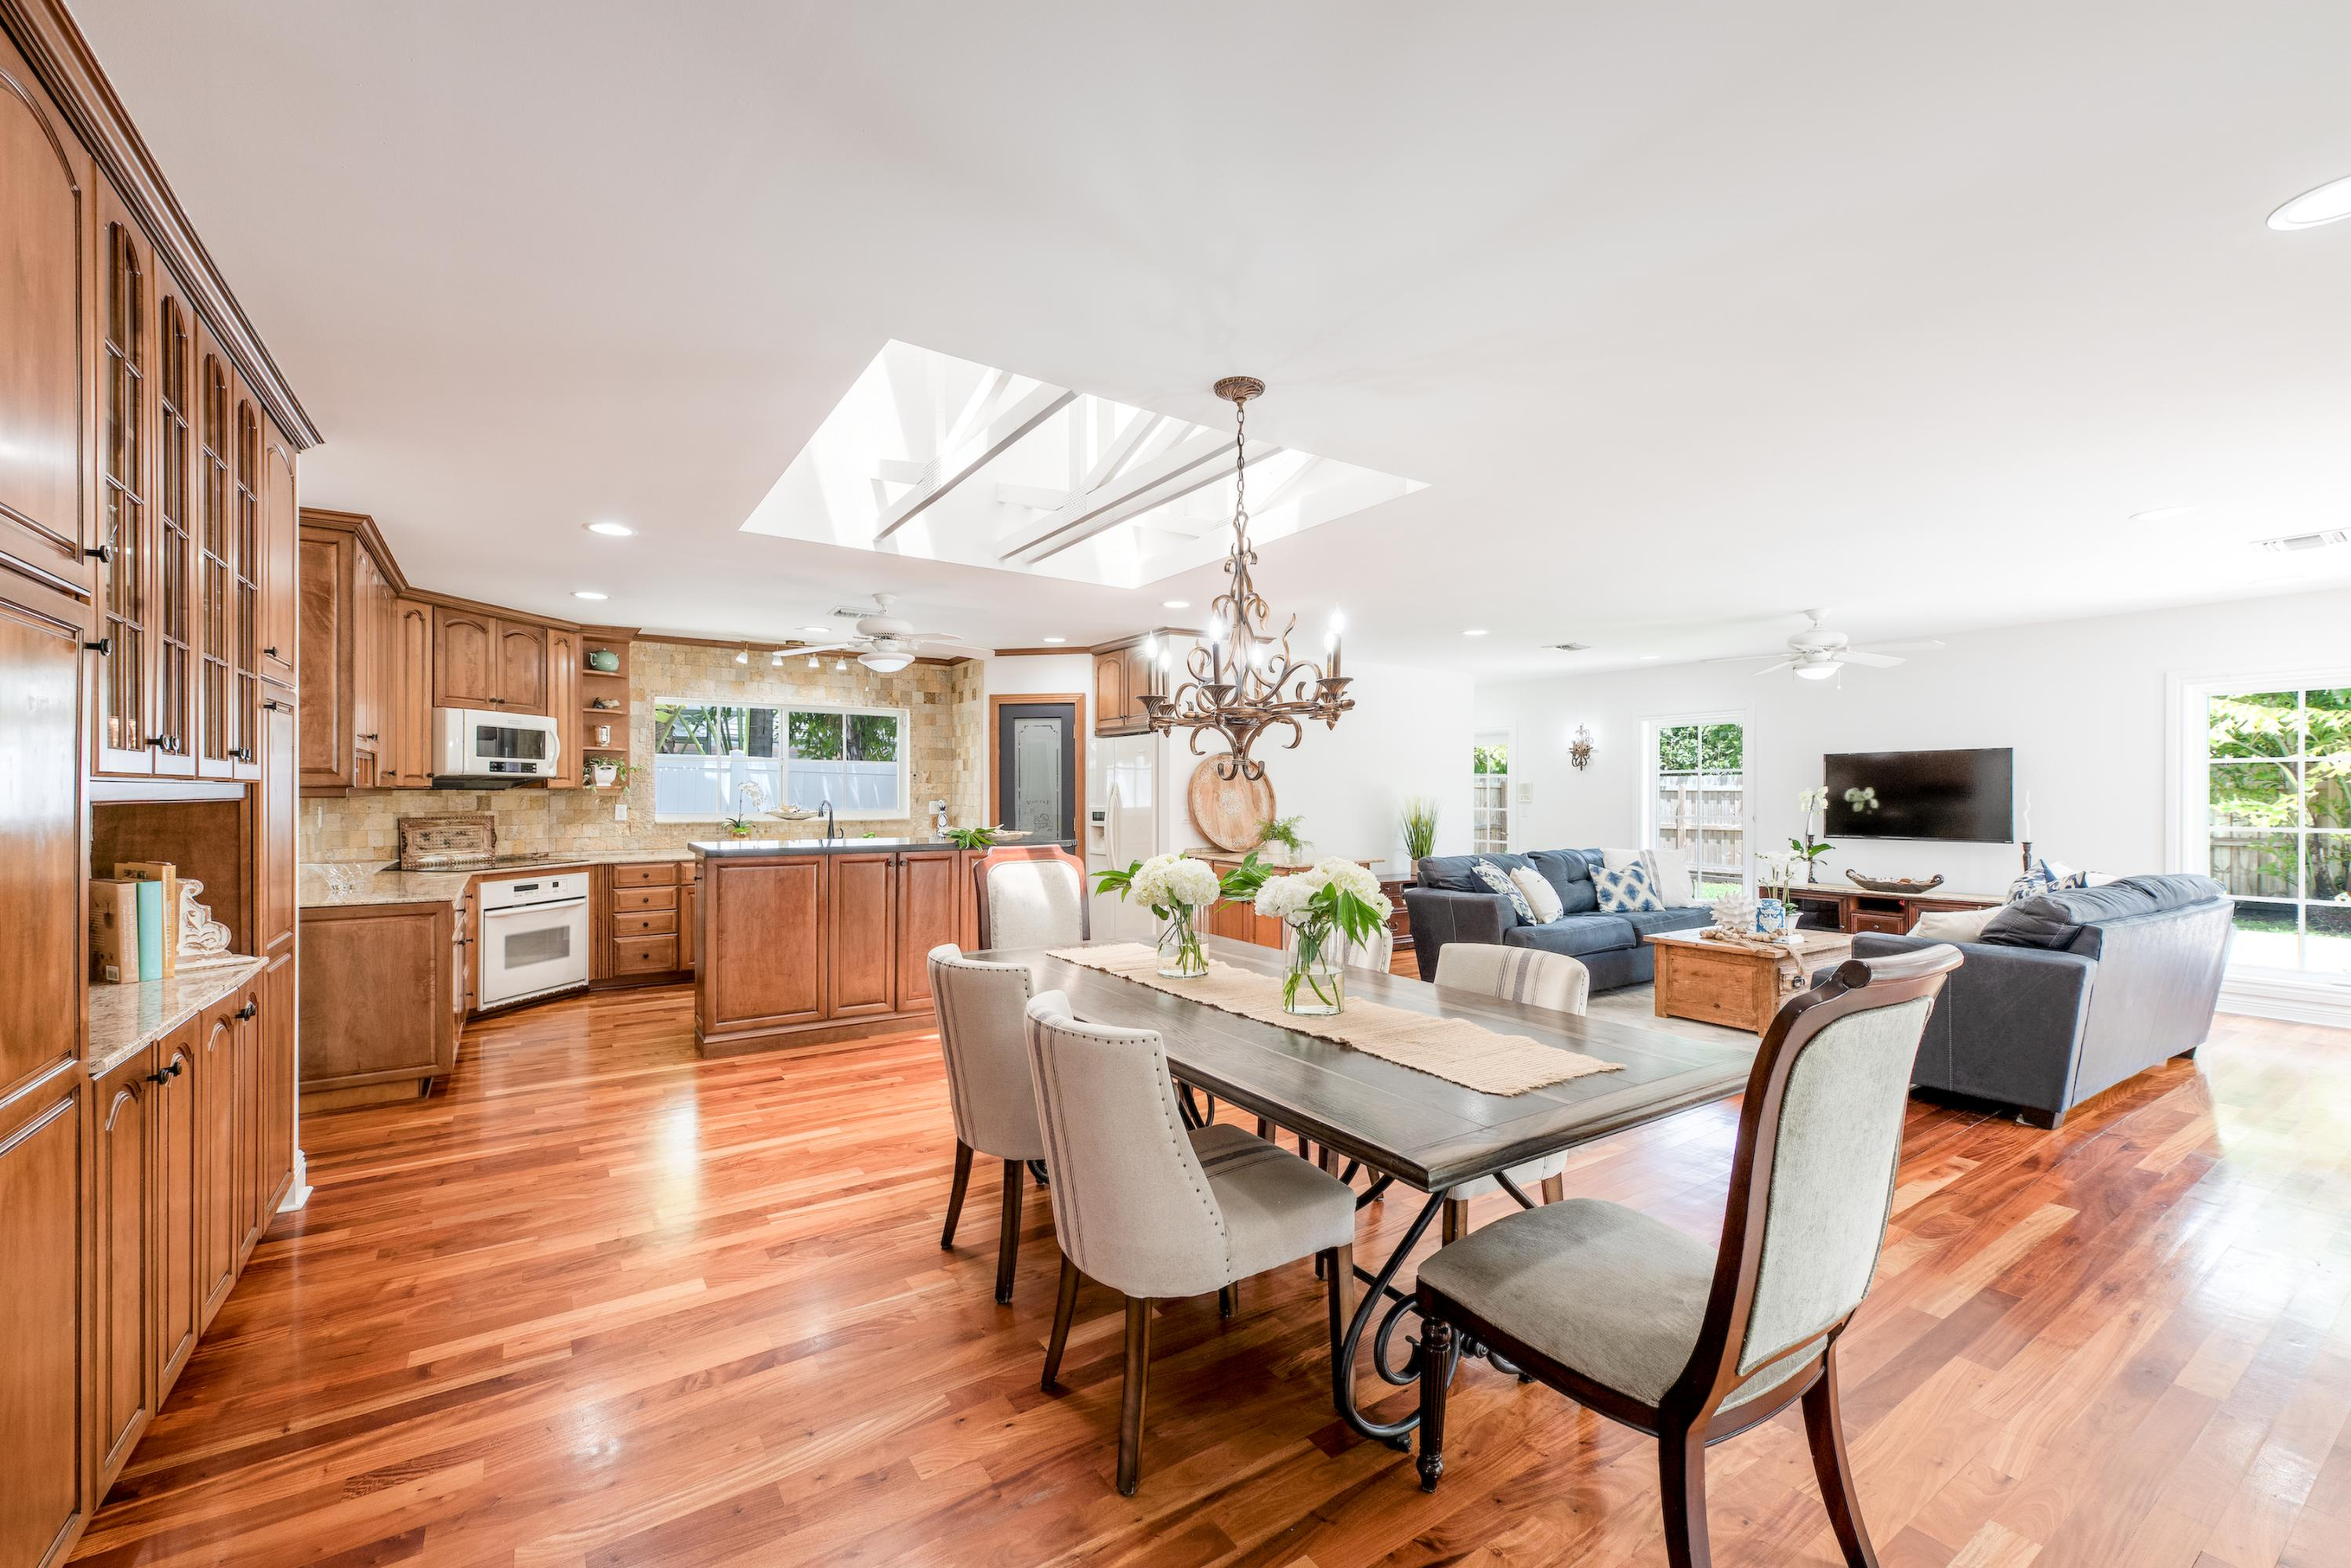 10-Dining-Room-Facing-Kitchen